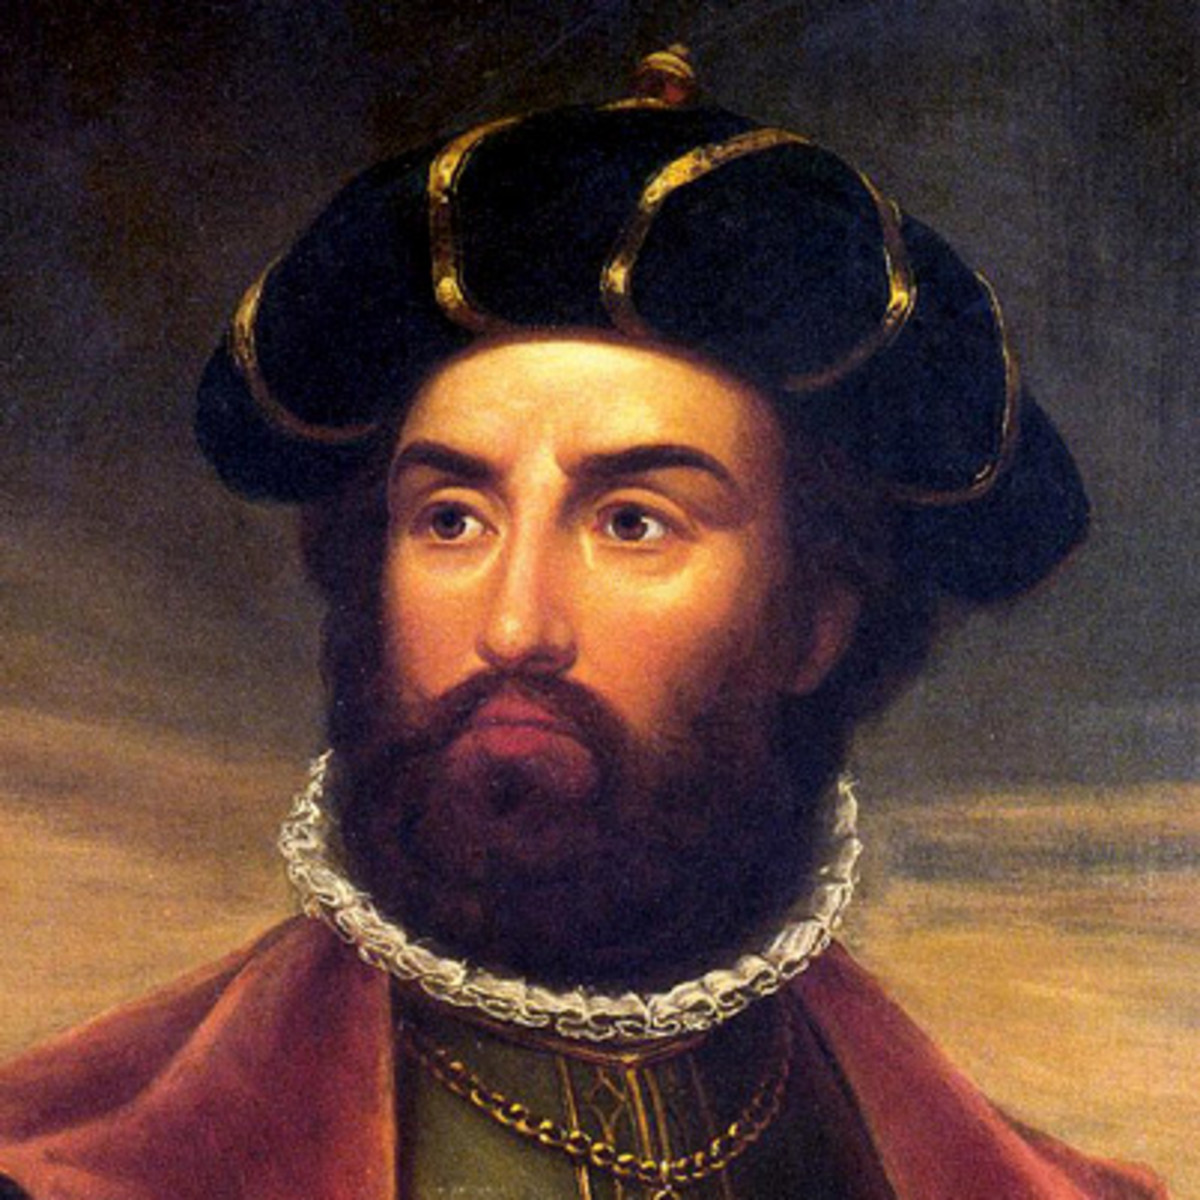 Vasco da gama parents